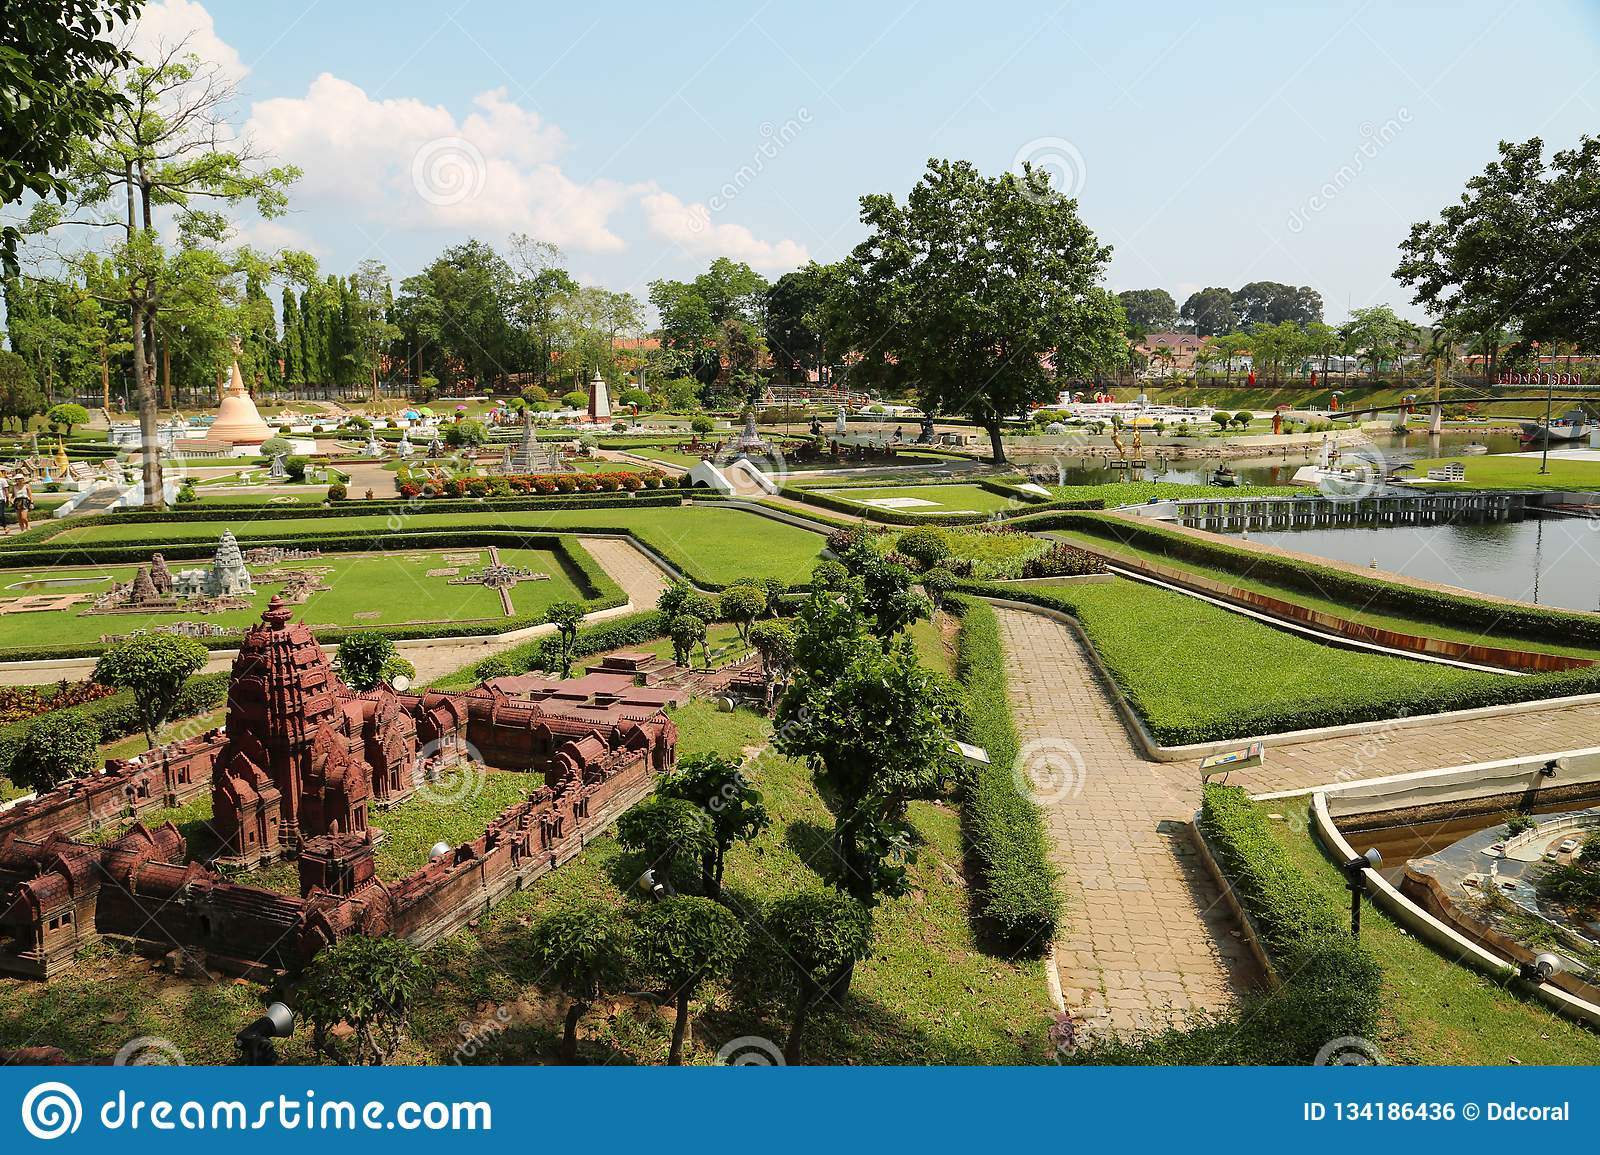 Models of world attractions in Mini Siam park in Pattaya, Thailand